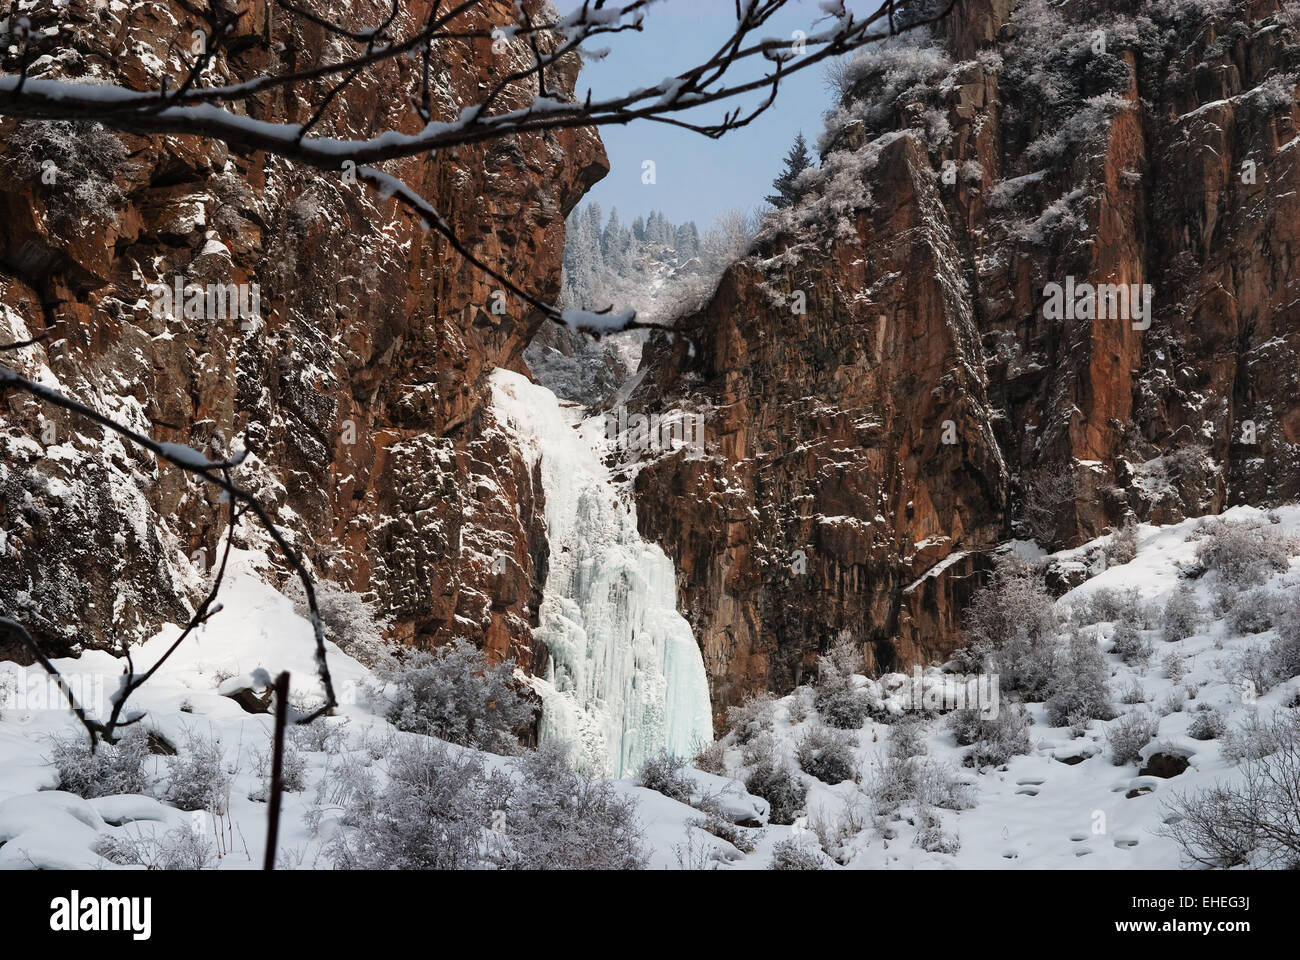 Rocks and icefall in mountains - Stock Image